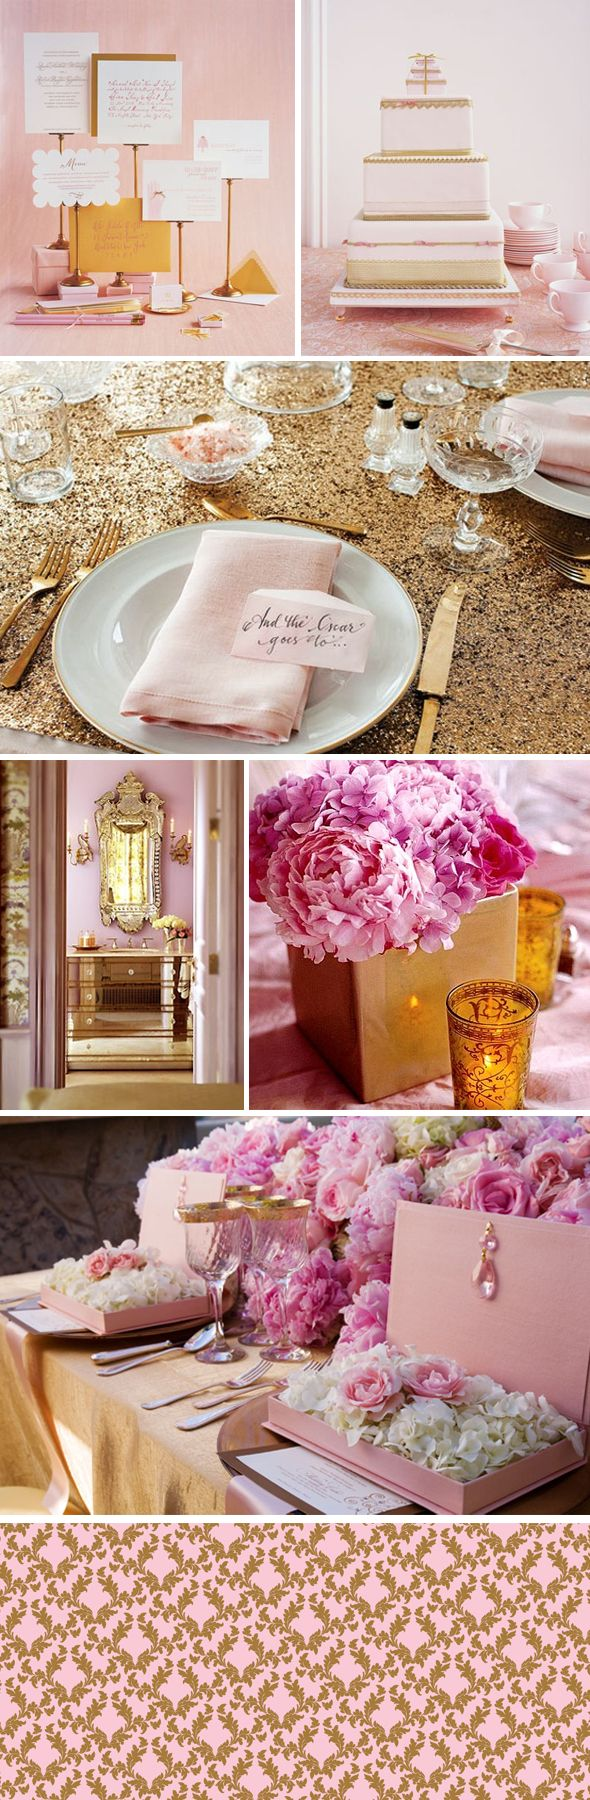 51 best images about Pink and Gold Quinceanera Theme on ...